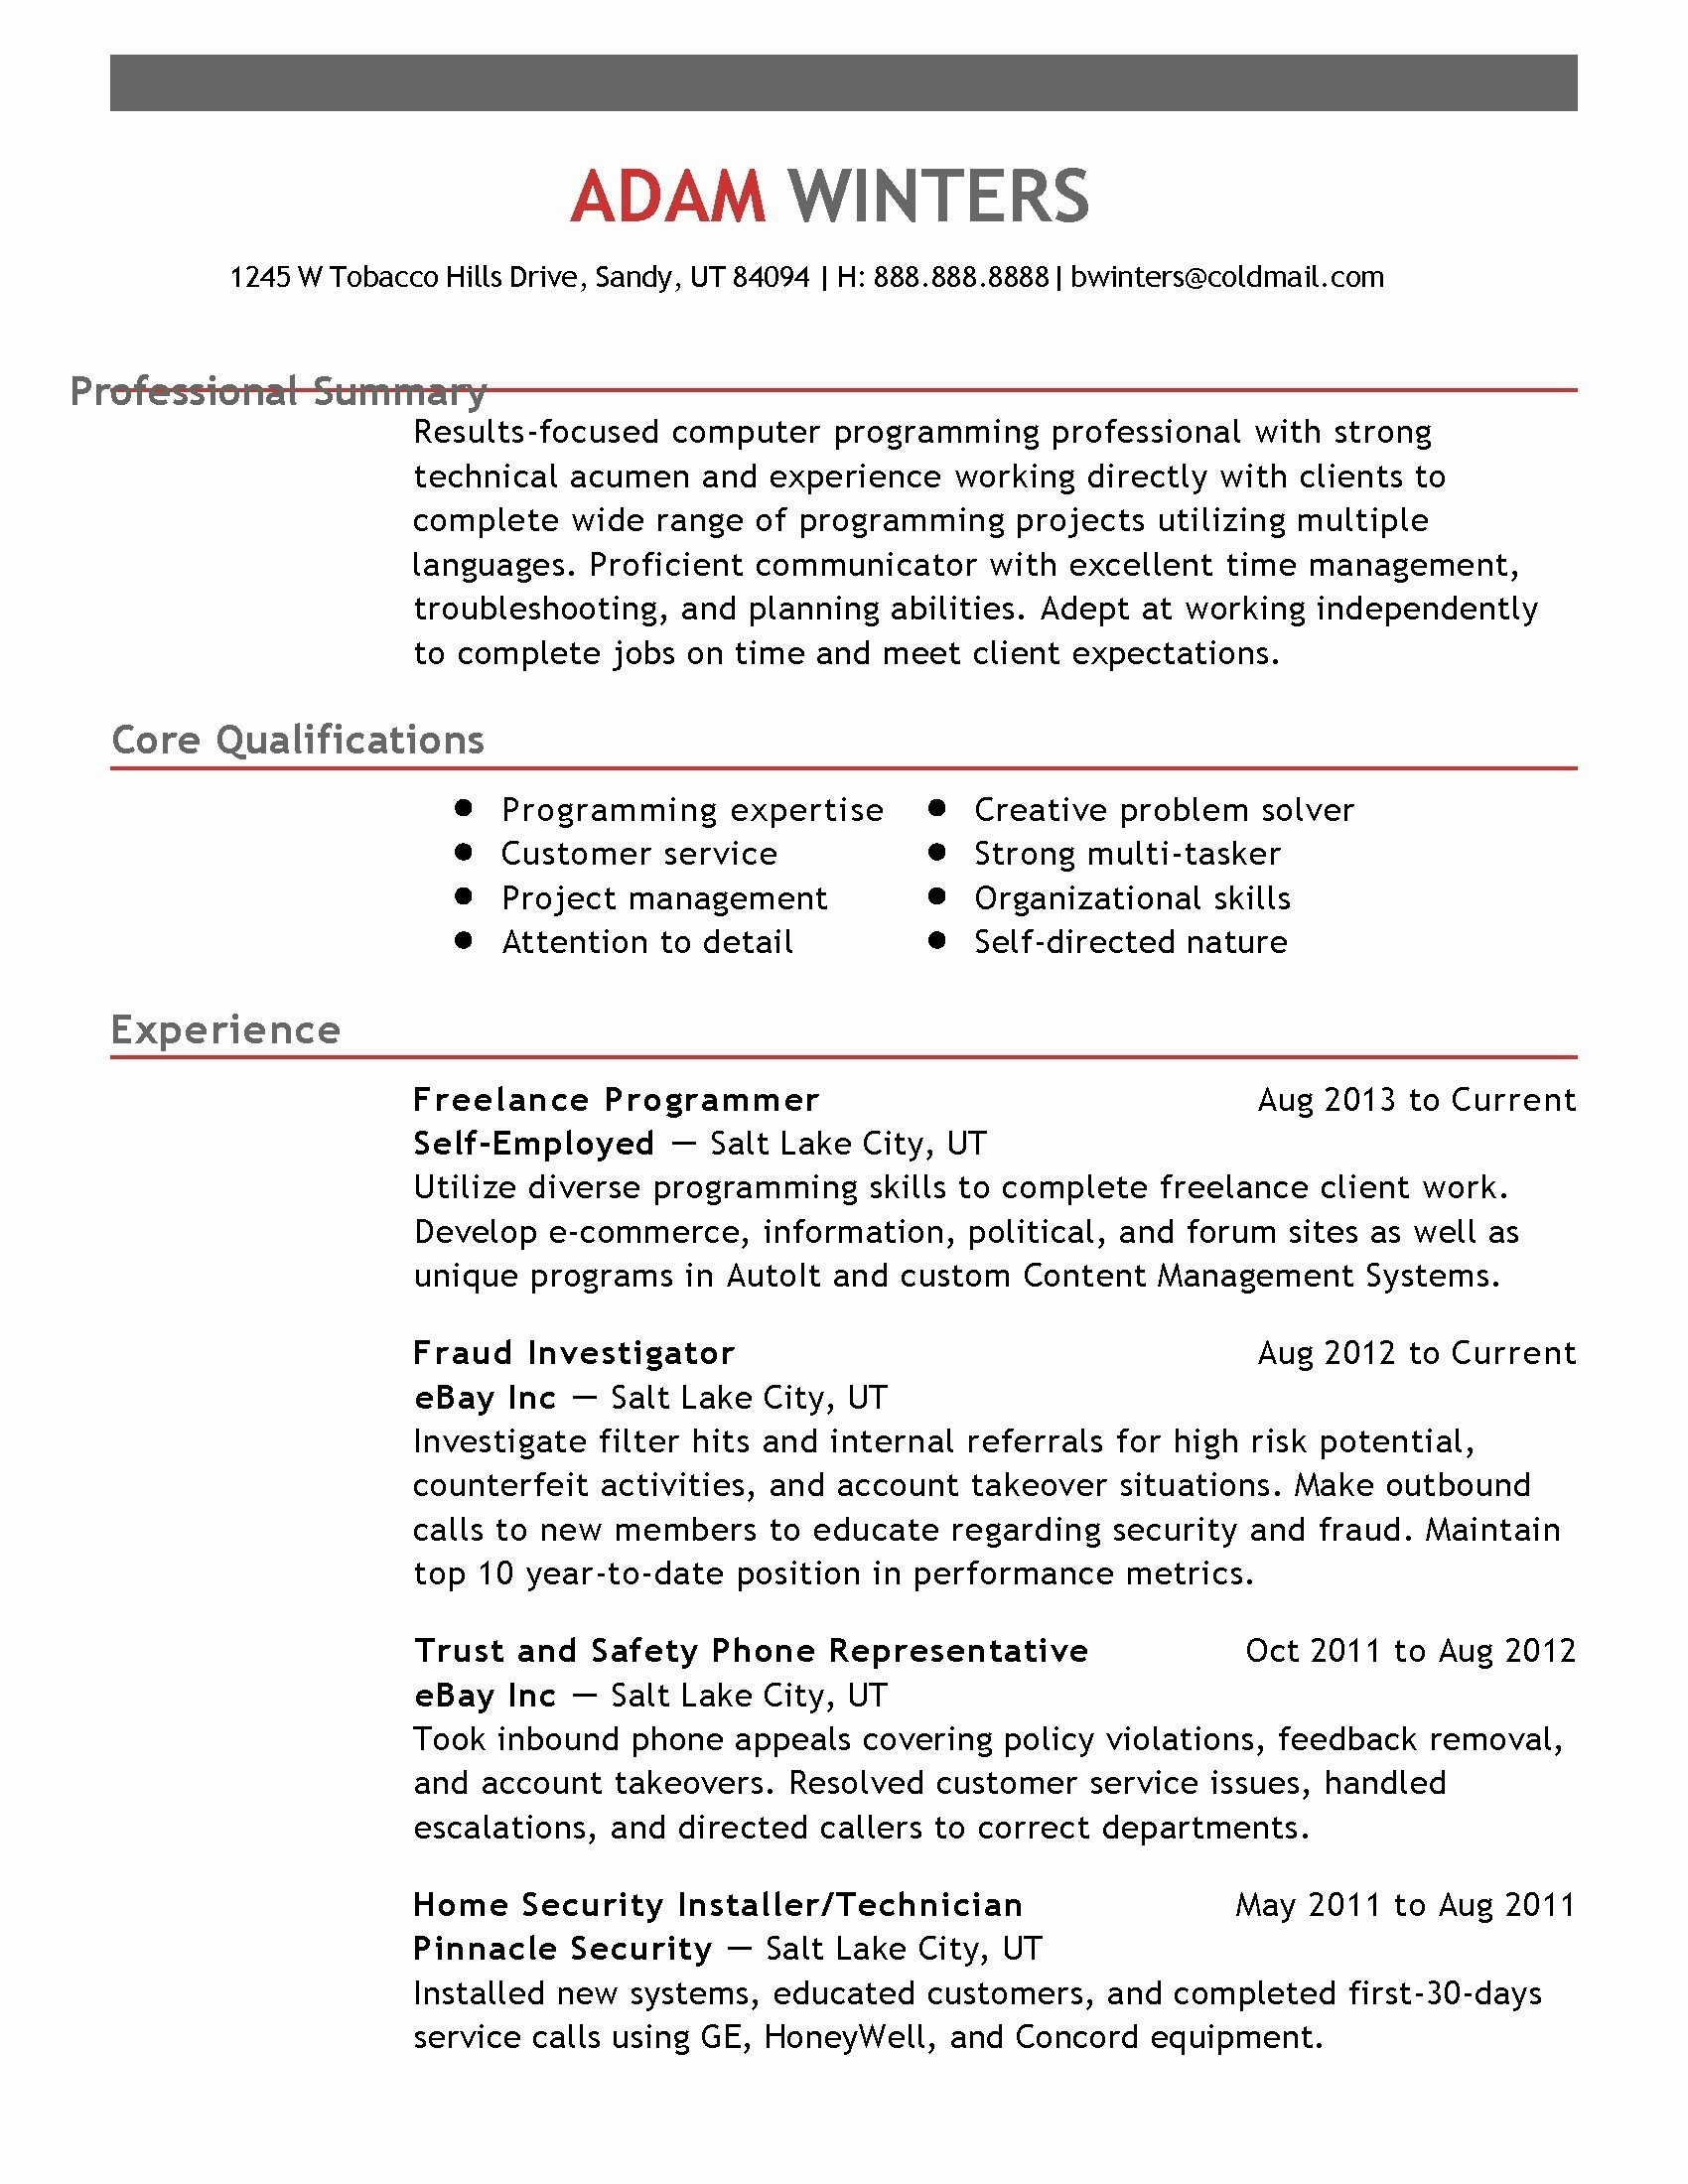 Theatre Tech Resume Template - Profile Resume Examples Unique Email Resume Template Best Executive